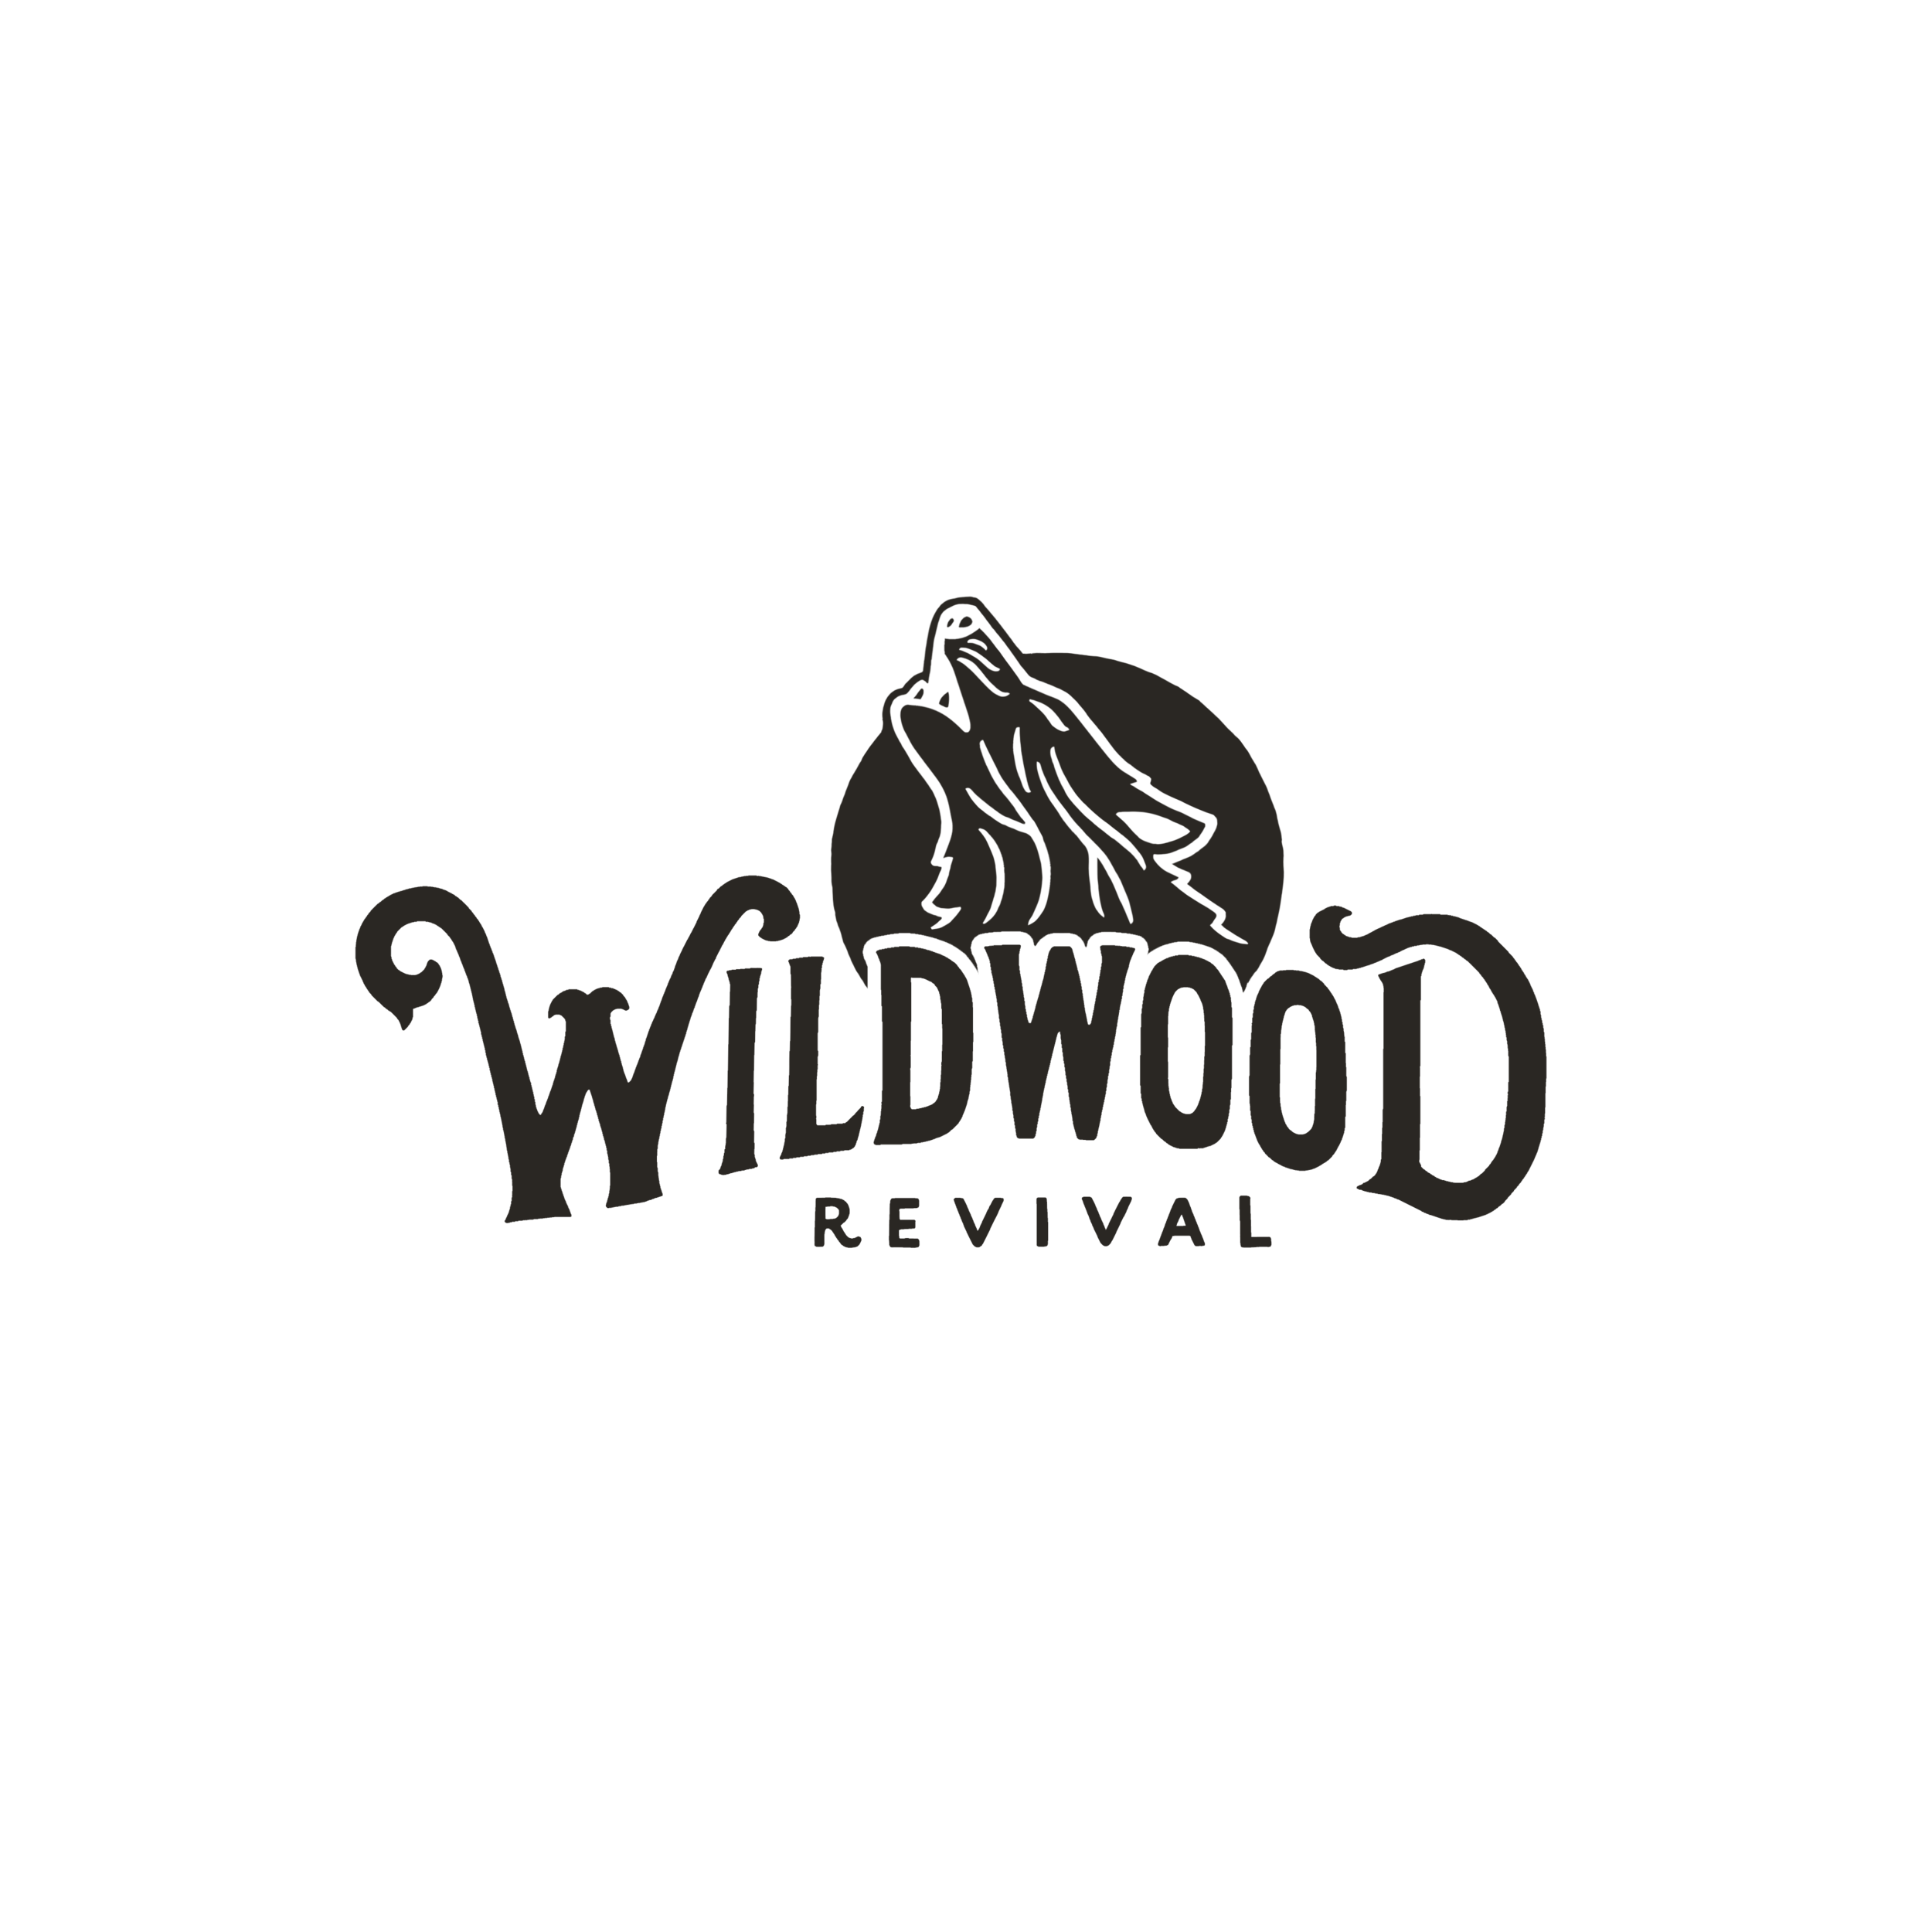 Wildwood Revival LOGO - No Background.png